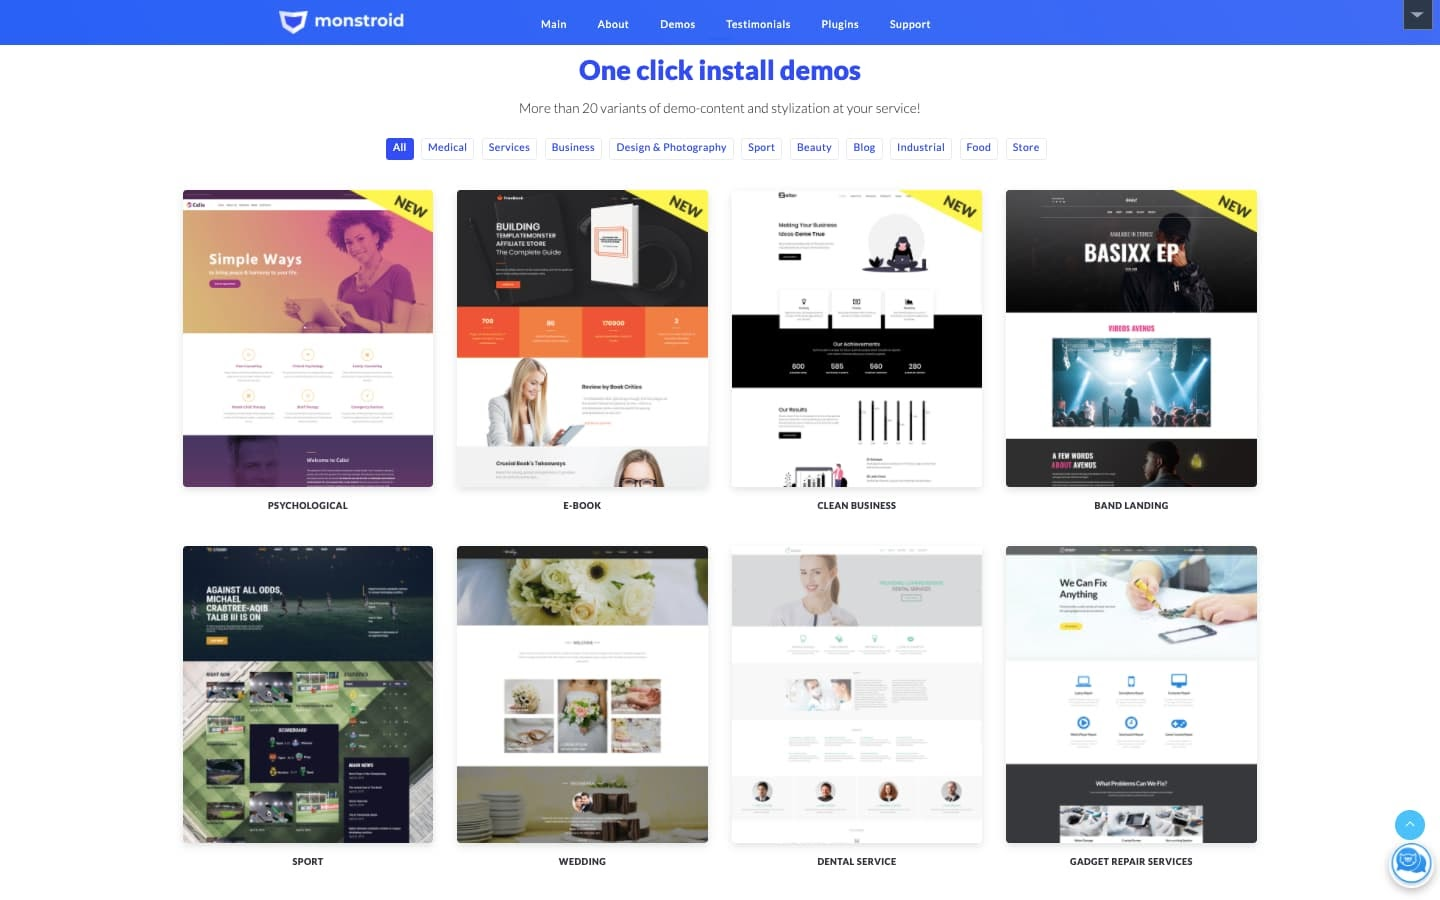 monstroid theme: 50+ one click install demos